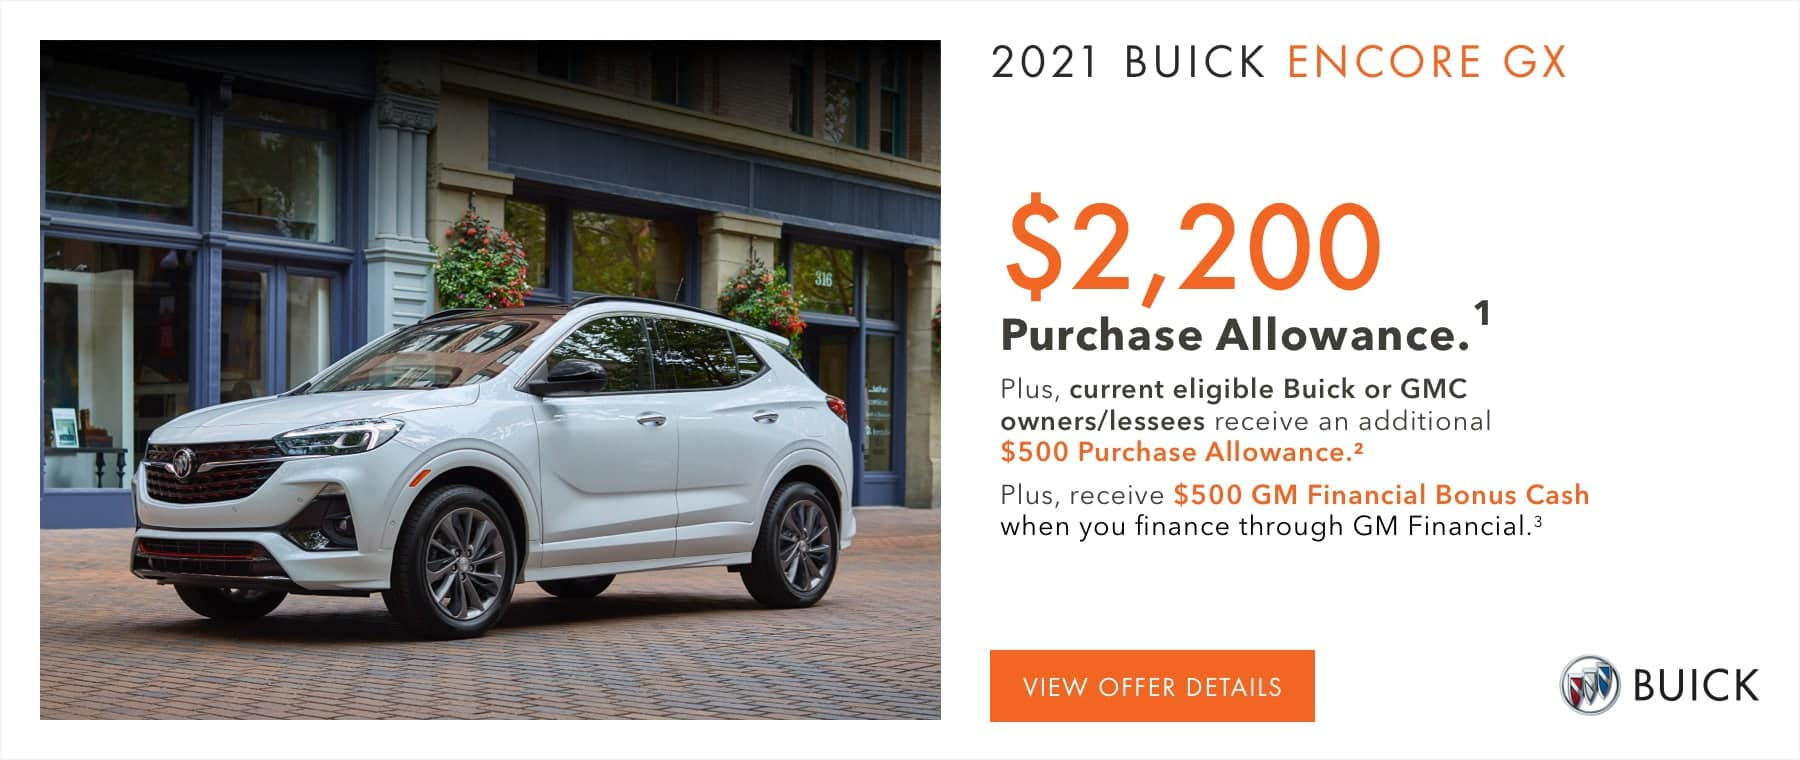 $2,200 Purchase Allowance.1 Plus, current eligible Buick or GMC owners/lessees receive an additional $500 Purchase Allowance.2 Plus, receive $500 GM Financial Bonus Cash when you finance through GM Financial.3